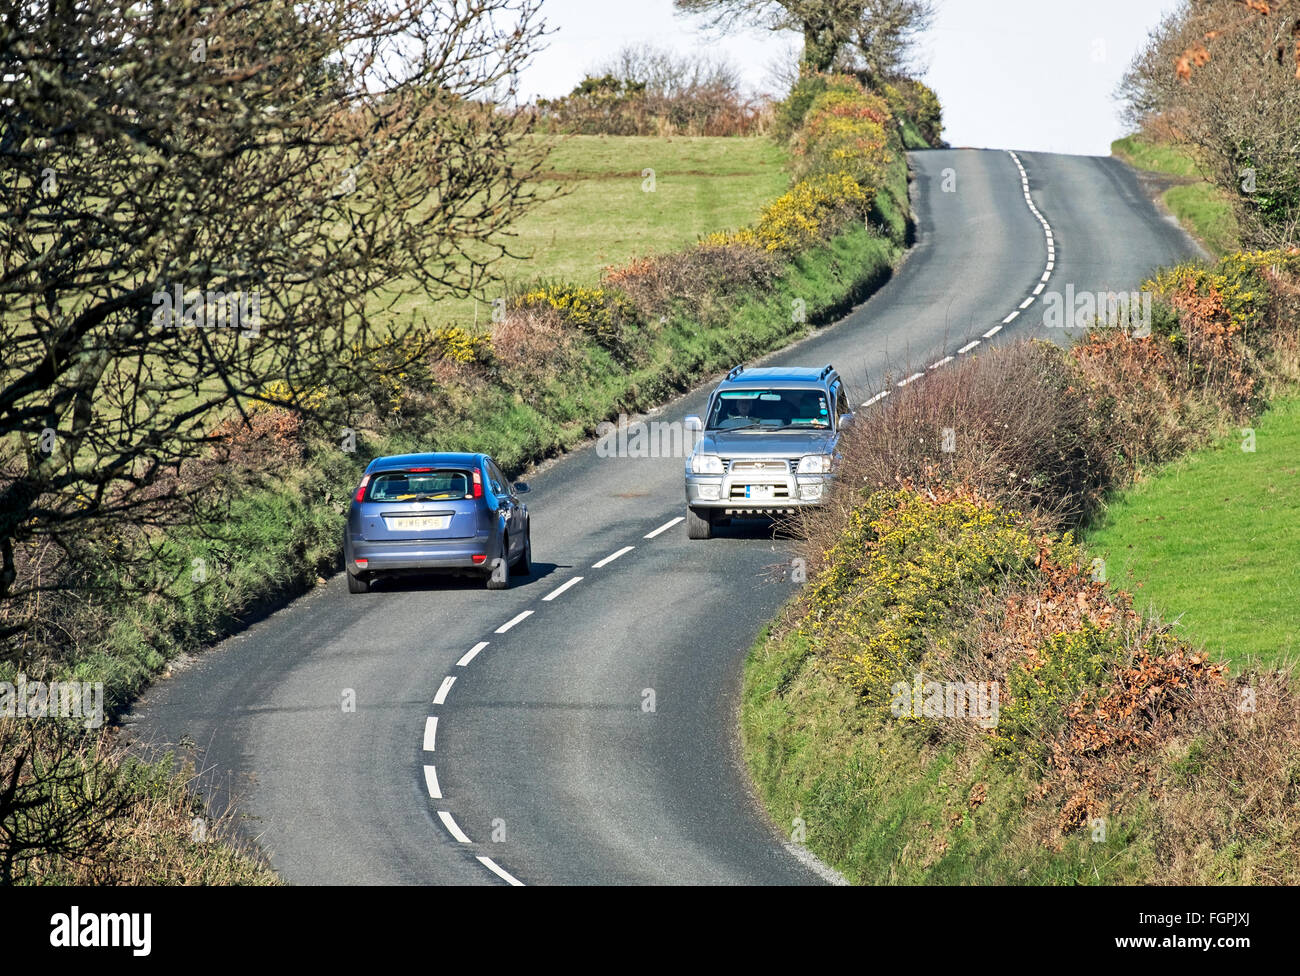 Two vehicles passing on a bend on a country road in cornwall, uk - Stock Image